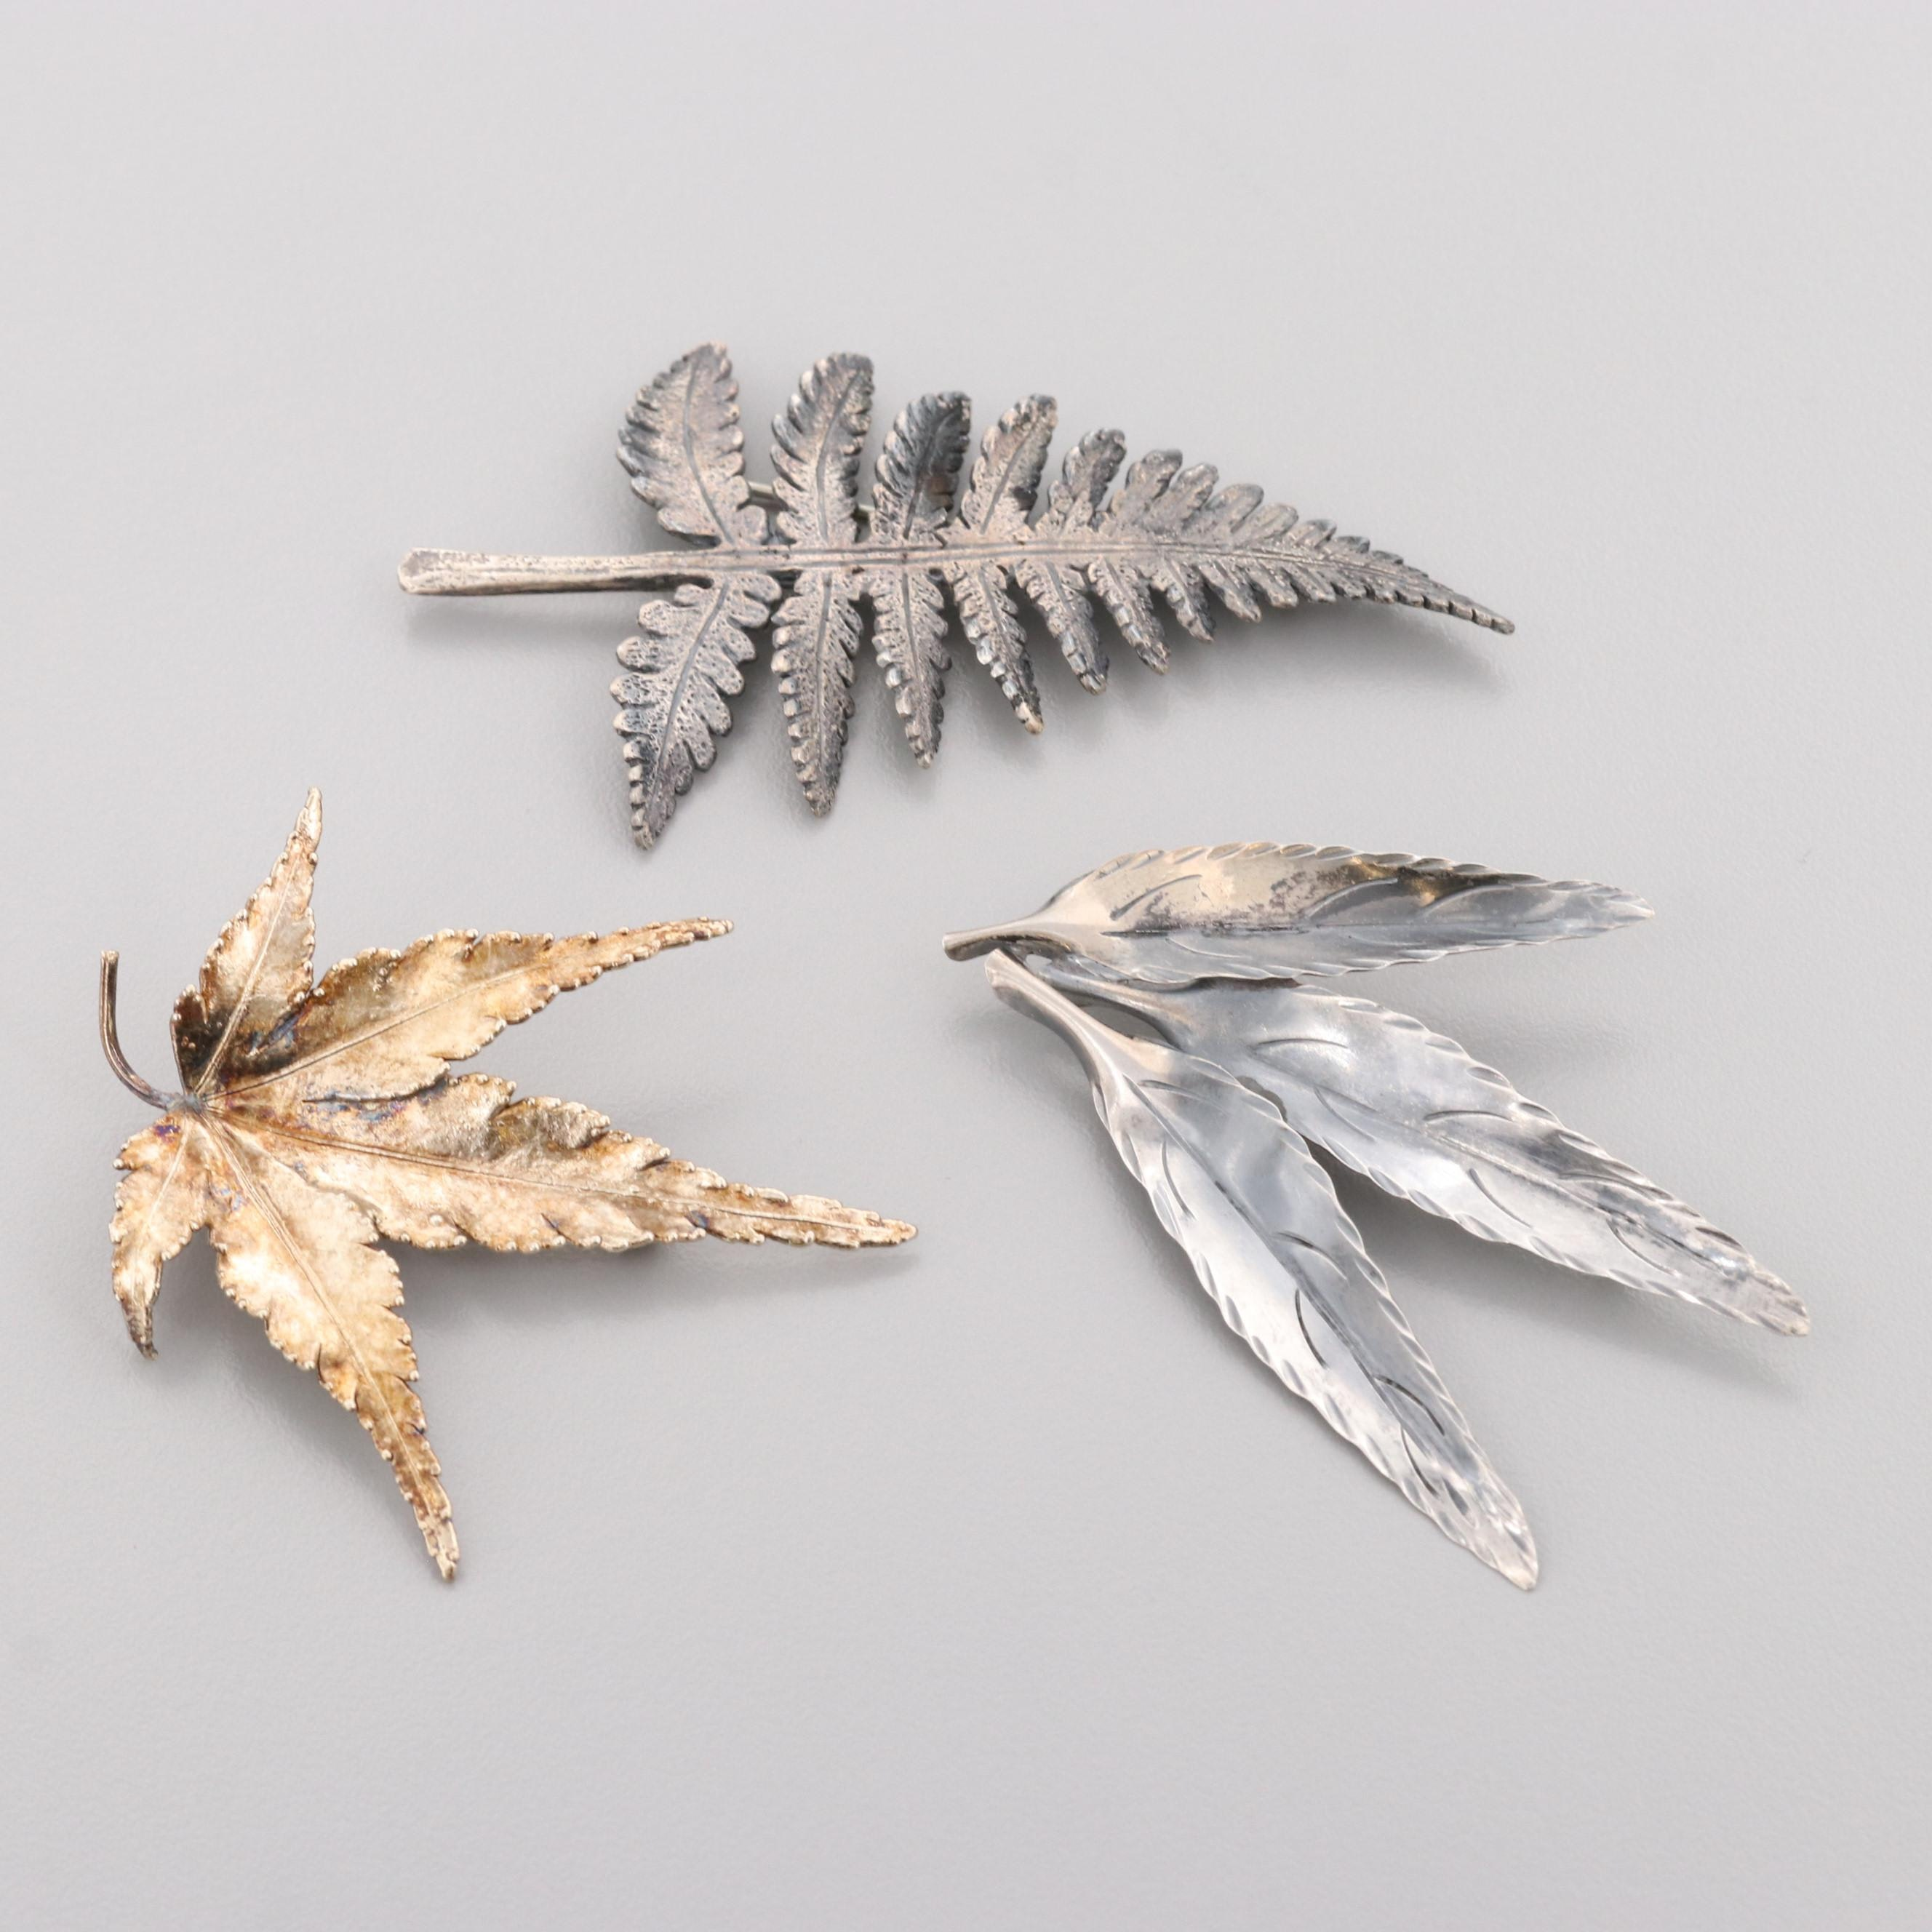 Vintage Sterling Silver Foliate Brooches Featuring Flora Danica and Stuart Nye